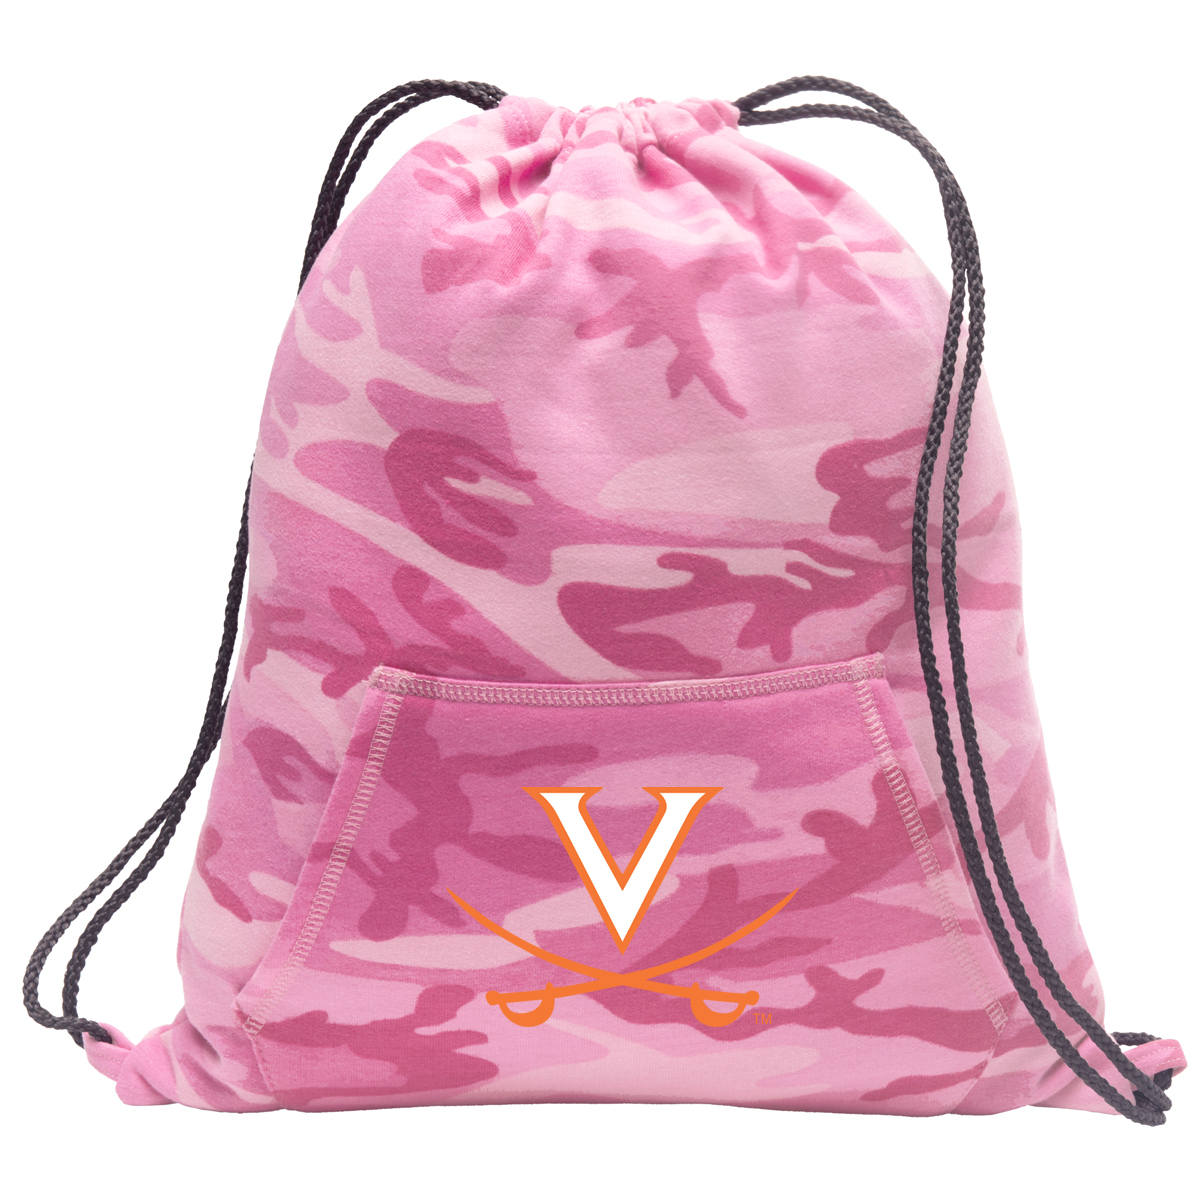 Girls University of Virginia Drawstring Backpack Pink Camo UVA Cinch Pack for Girls Women Her